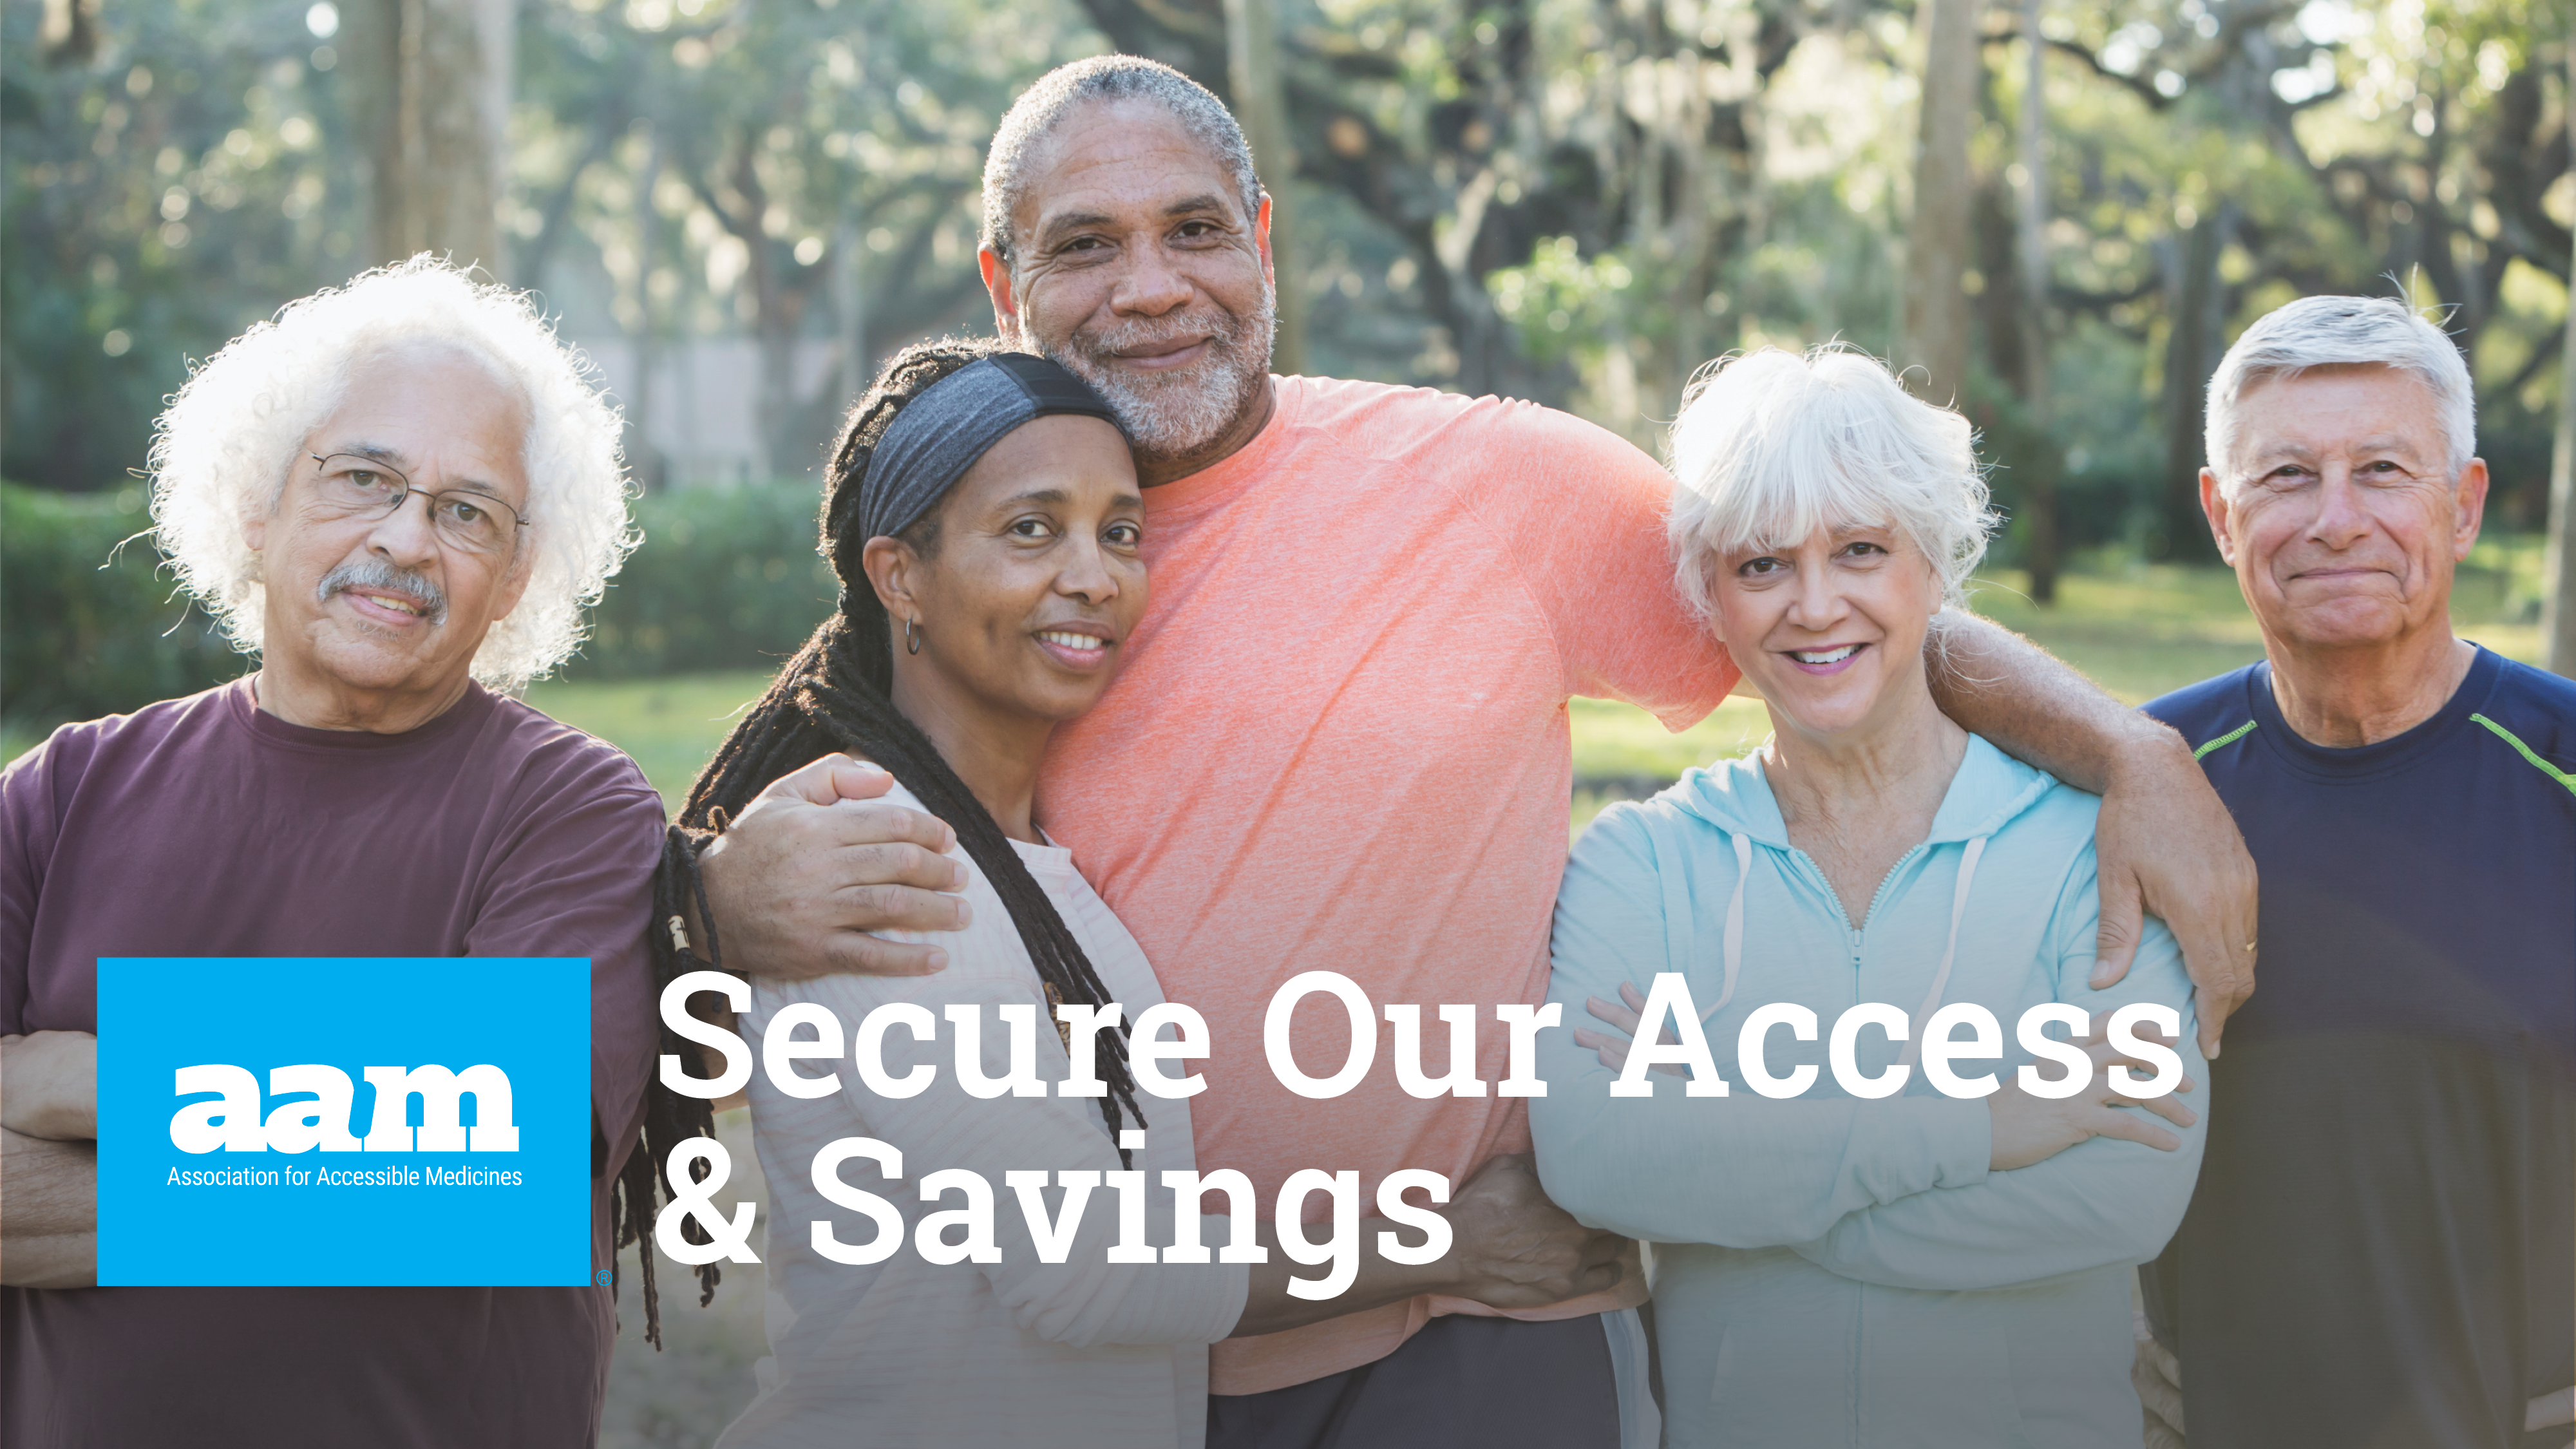 Secure Our Access & Savings